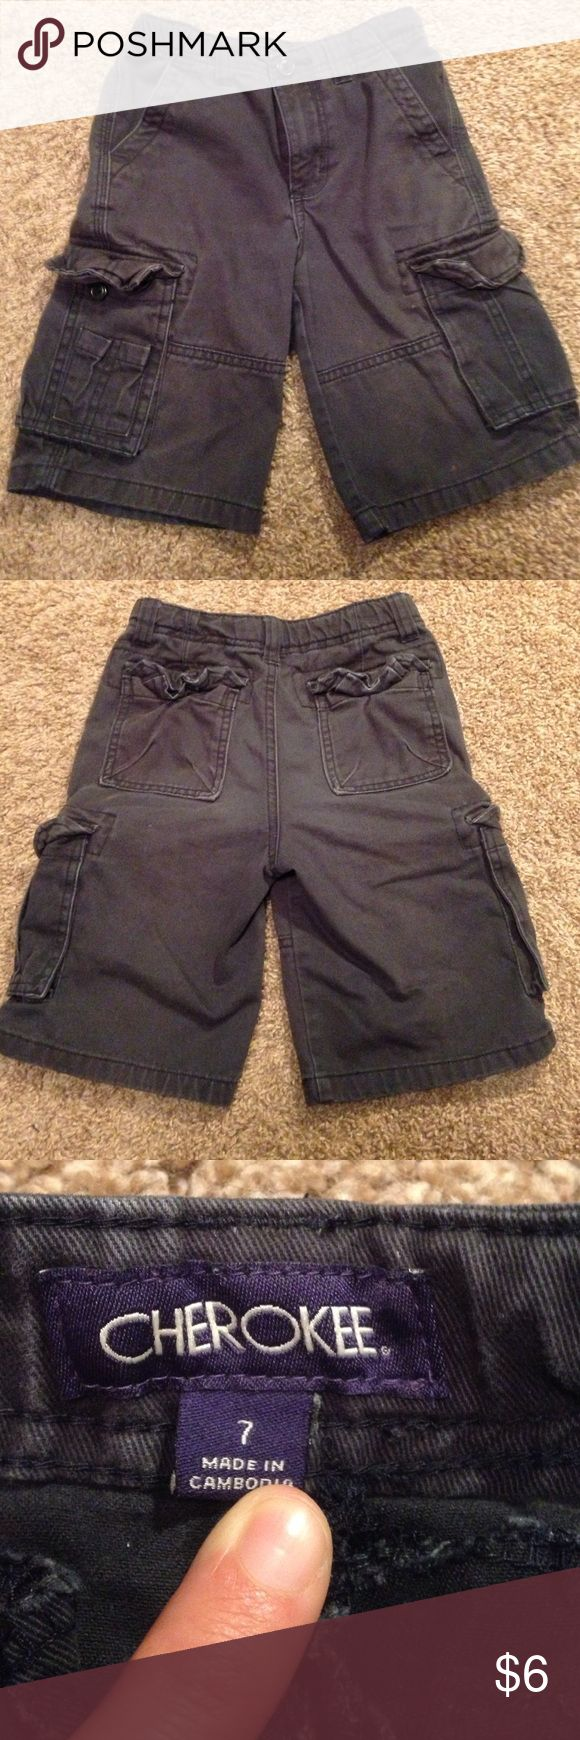 Boys navy blue cargo shorts. Cherokee brand navy blue cargo shorts. There are a few light spots (no bigger than a pen tip) on the front and back. Maybe small bleach marks? I can't quite tell but they are not very noticeable! Cherokee Bottoms Shorts